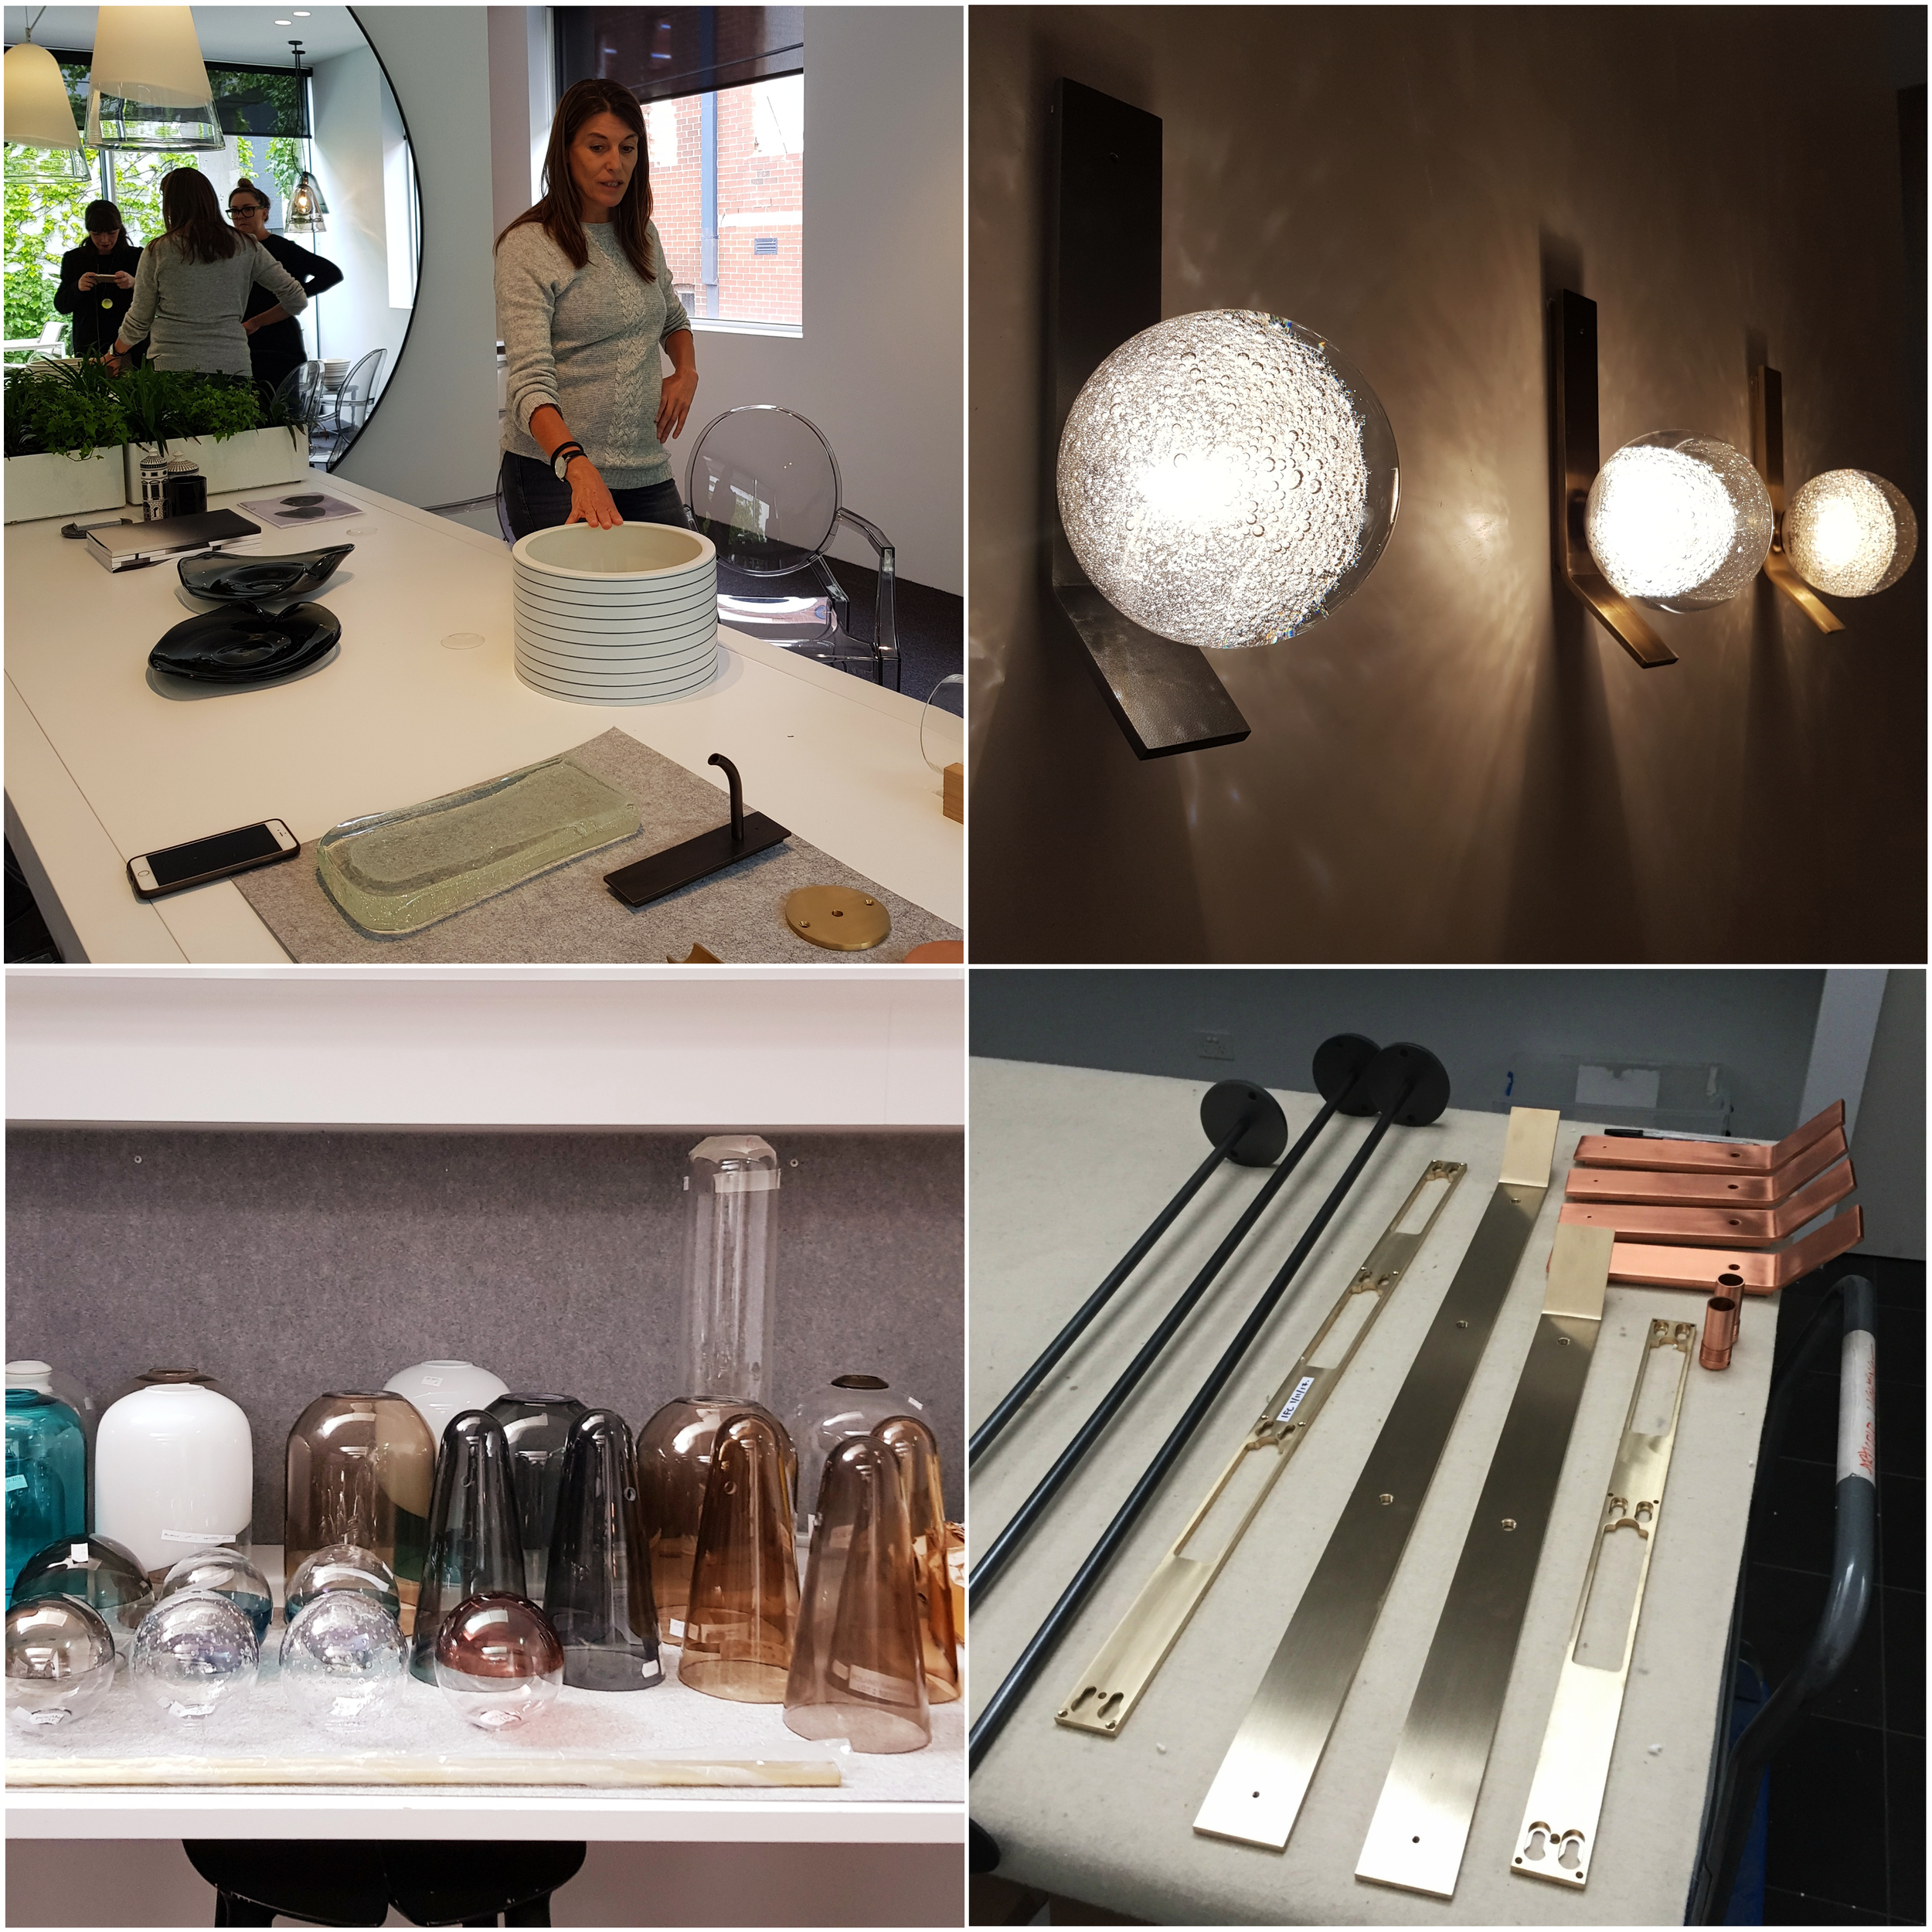 Nicci shared with us some of her amazing prototypes that are in the pipeline! We are already thinking about ways in which we can use these delicate new pieces in our client's homes.